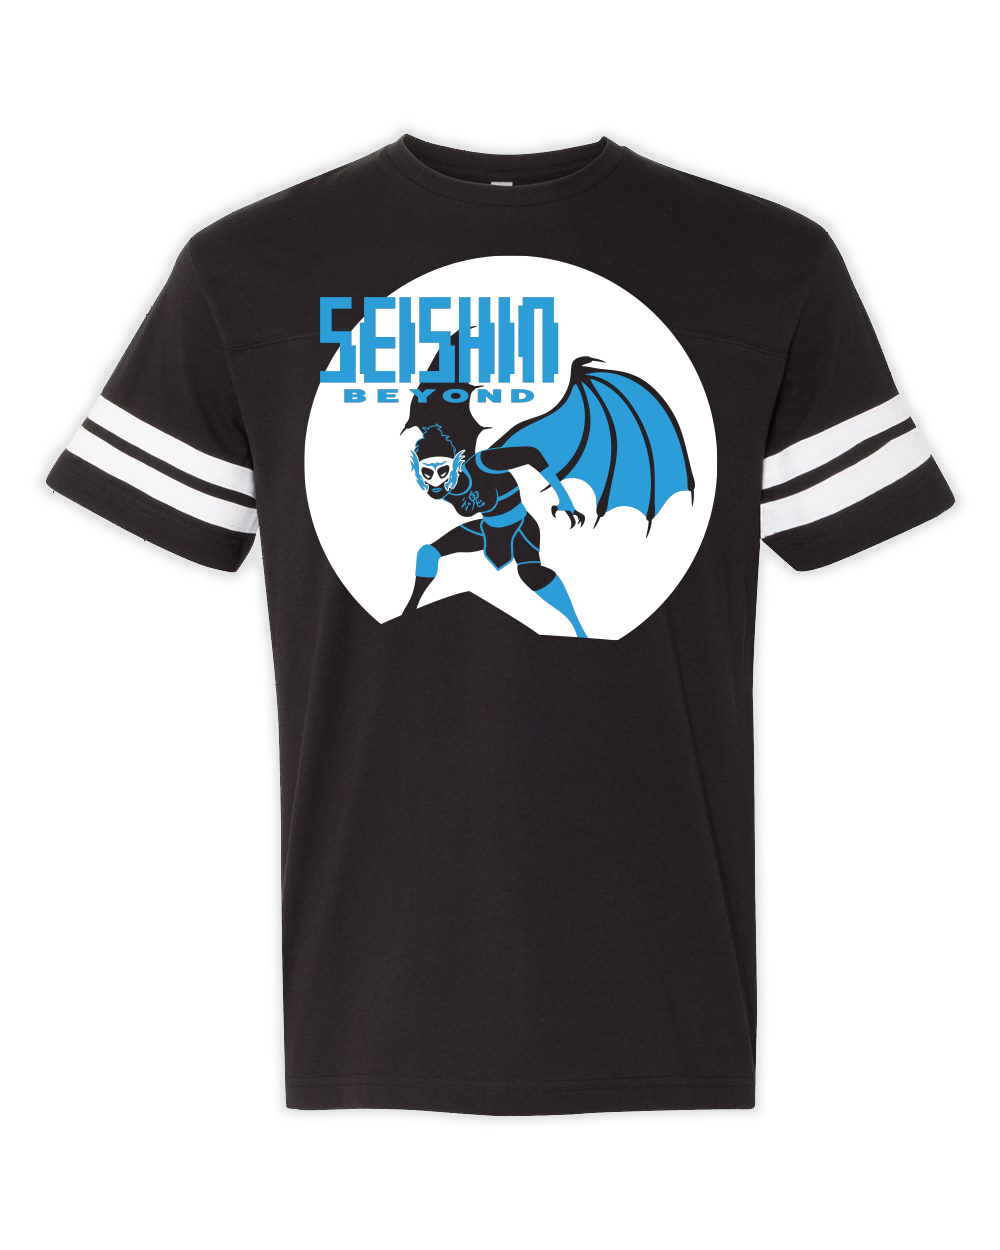 Seishin Beyond -Independent Professional Wrestling Artwork & Merchandise by Mouthpiece Studios